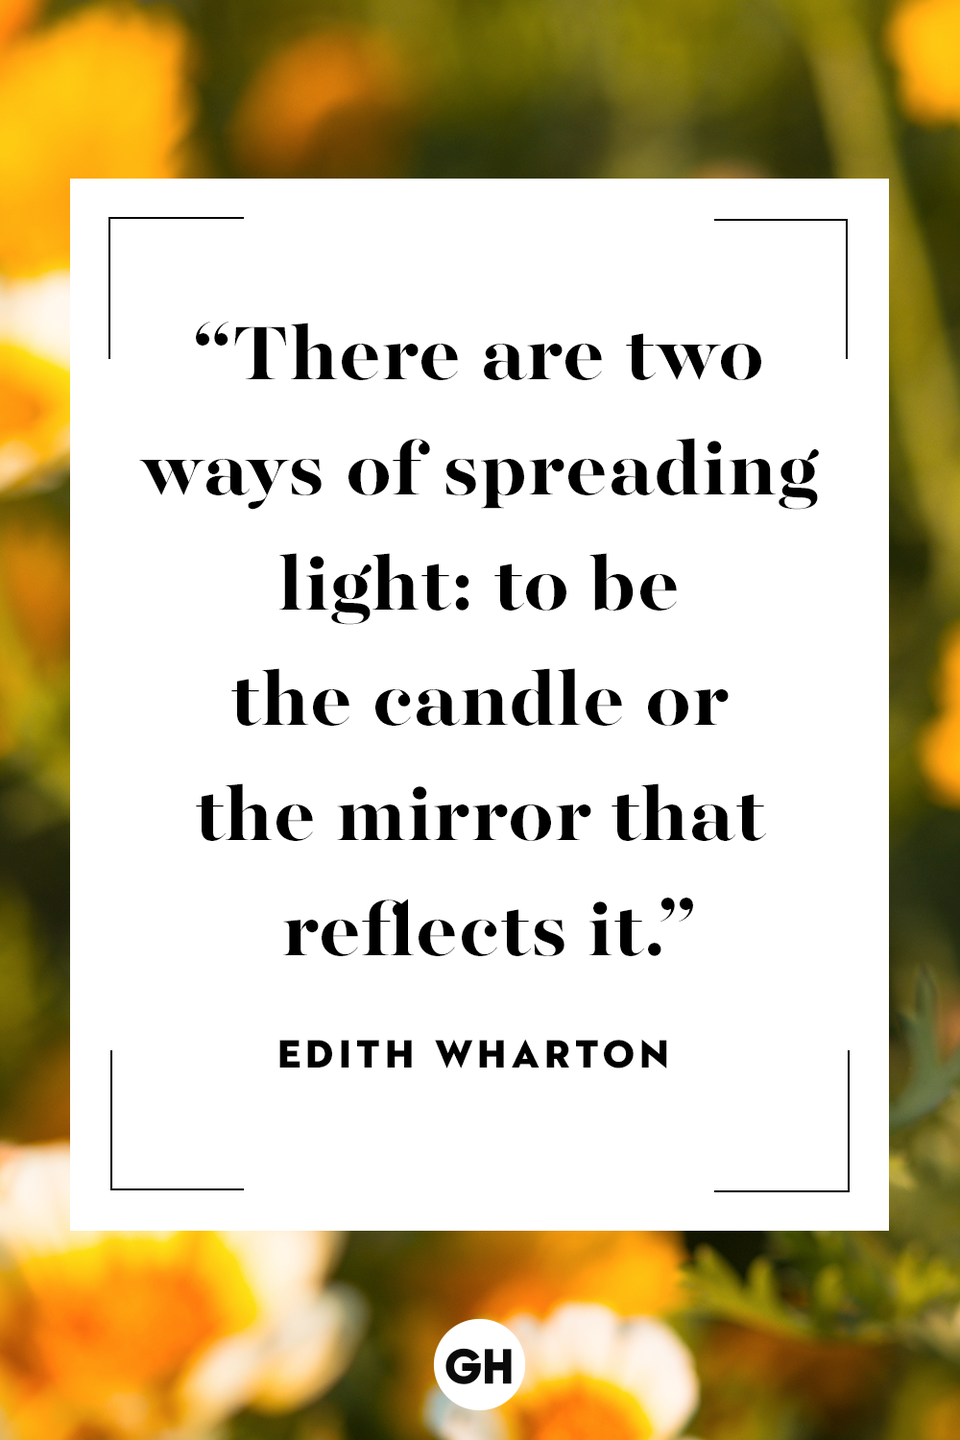 <p>There are two ways of spreading light: to be the candle or the mirror that reflects it.</p>